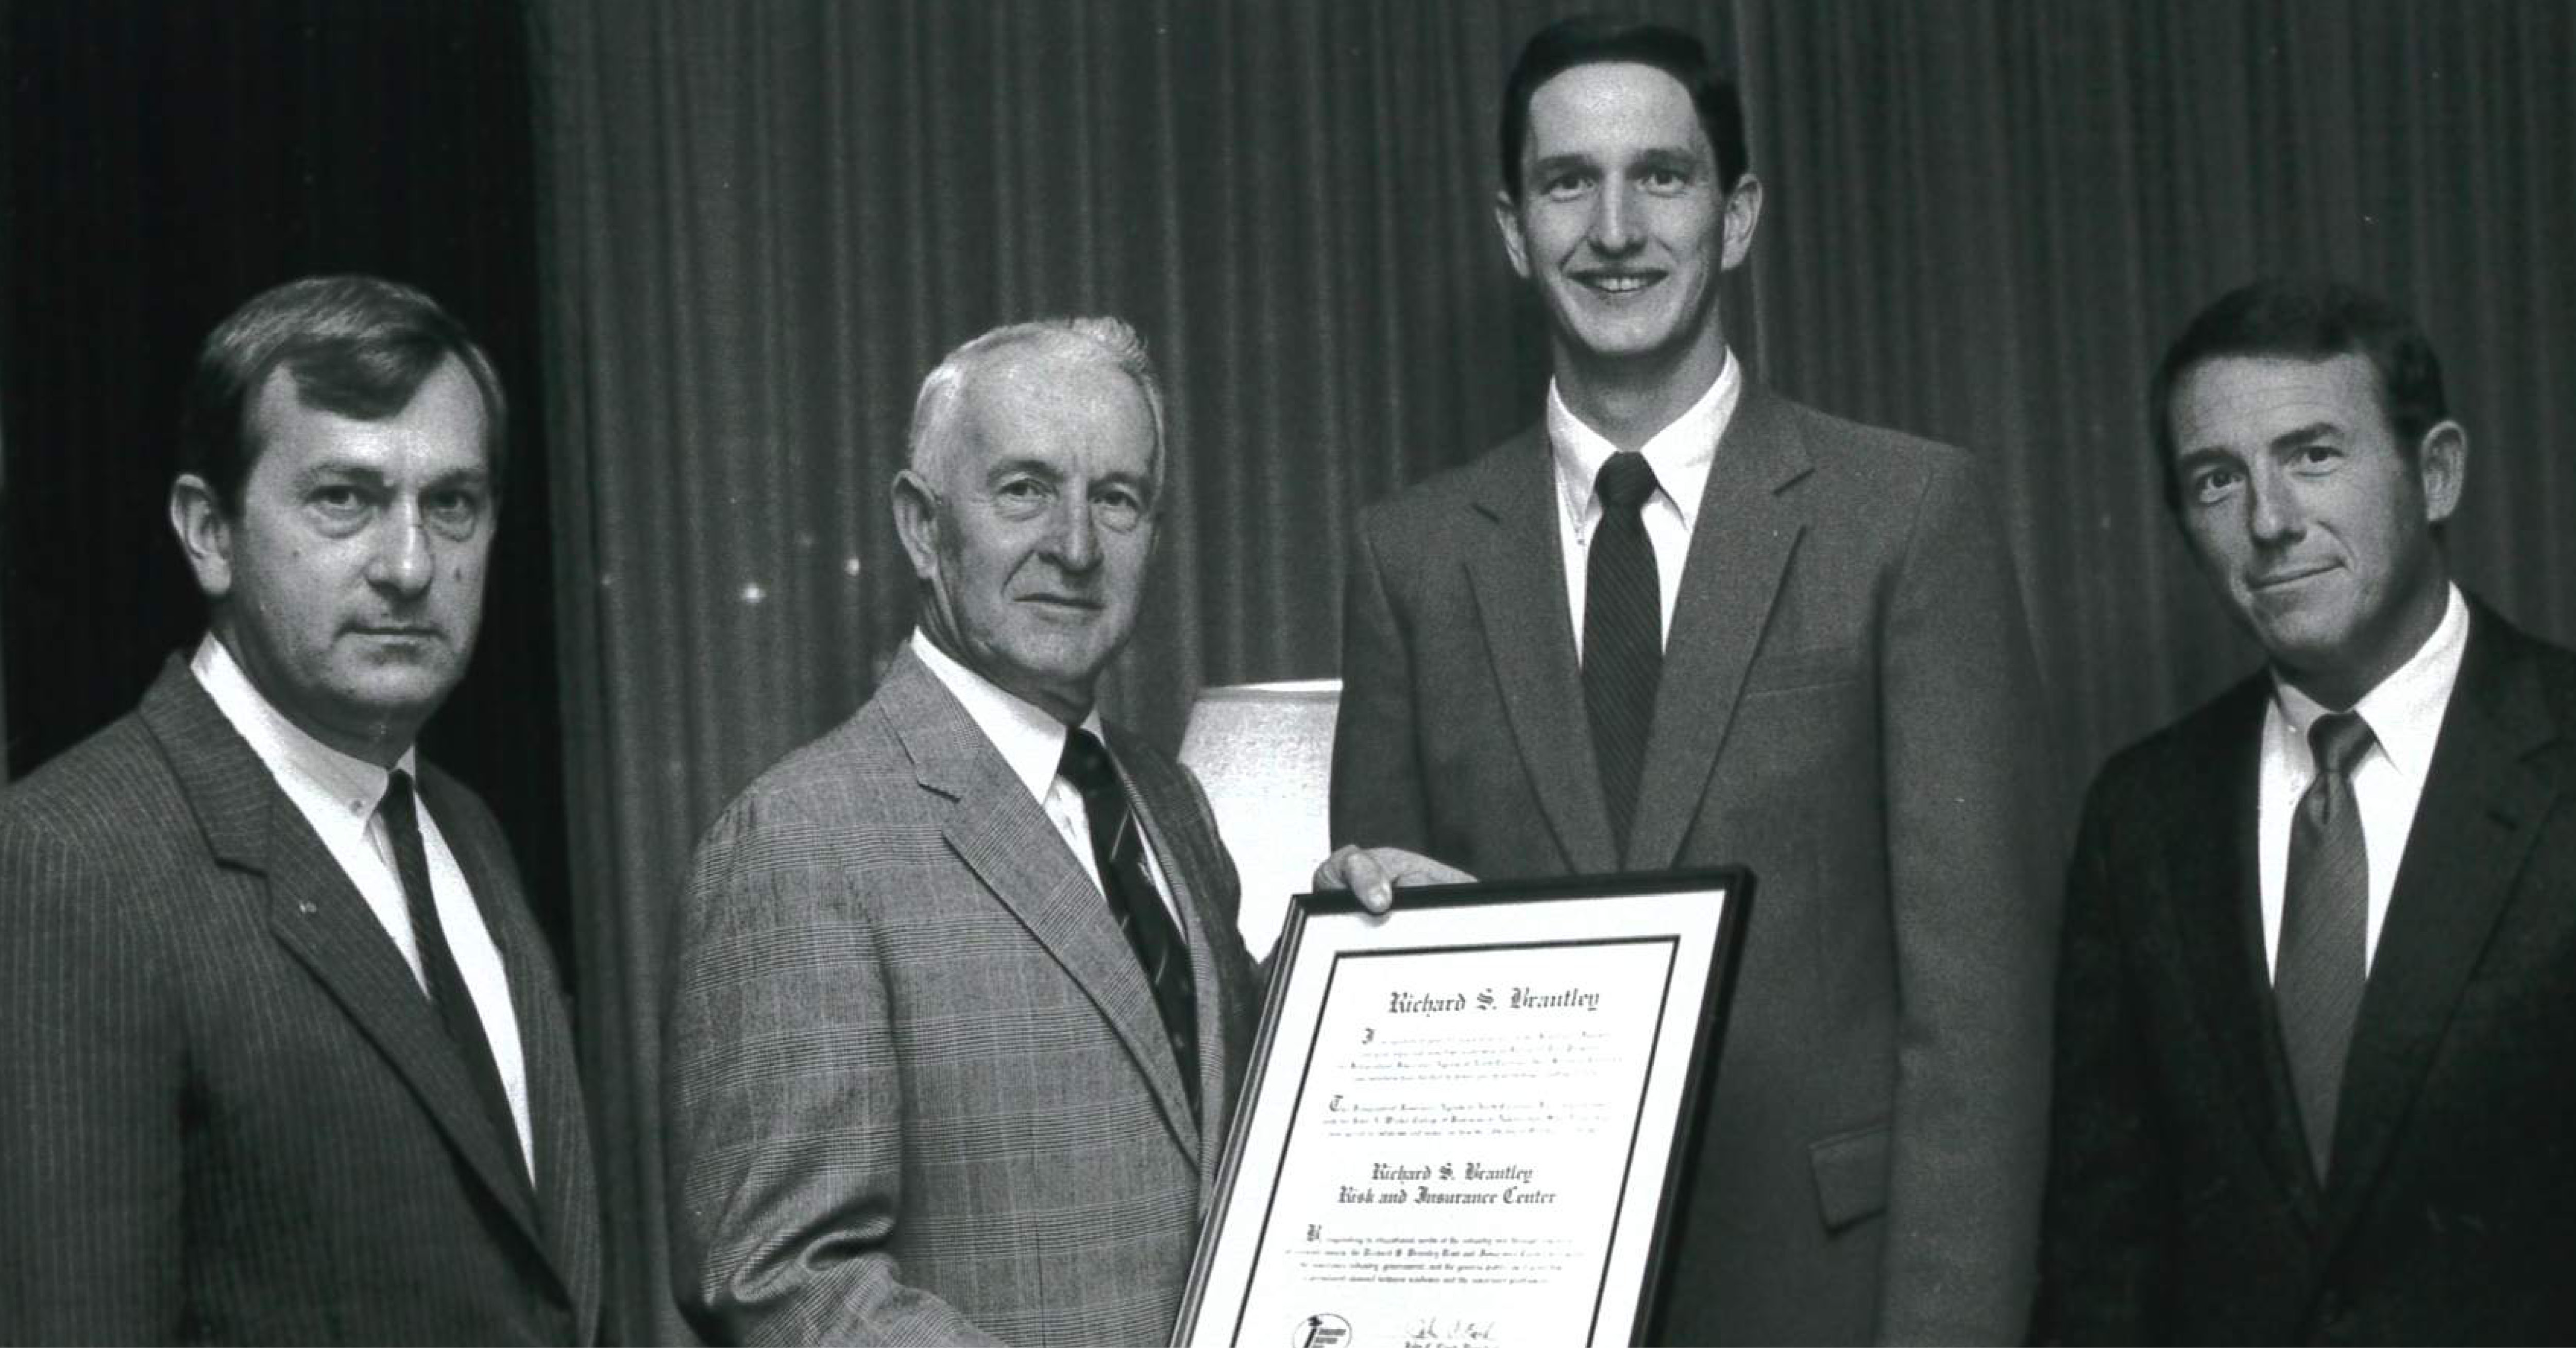 Paul Combs (left), Walker College Dean; Richard Brantley, retired IIANC Executive Vice President (holding plaque); Dave Wood, Brantley Center Director; and (far right) Harry Davis, Chairperson of Finance, Insurance and Real Estate